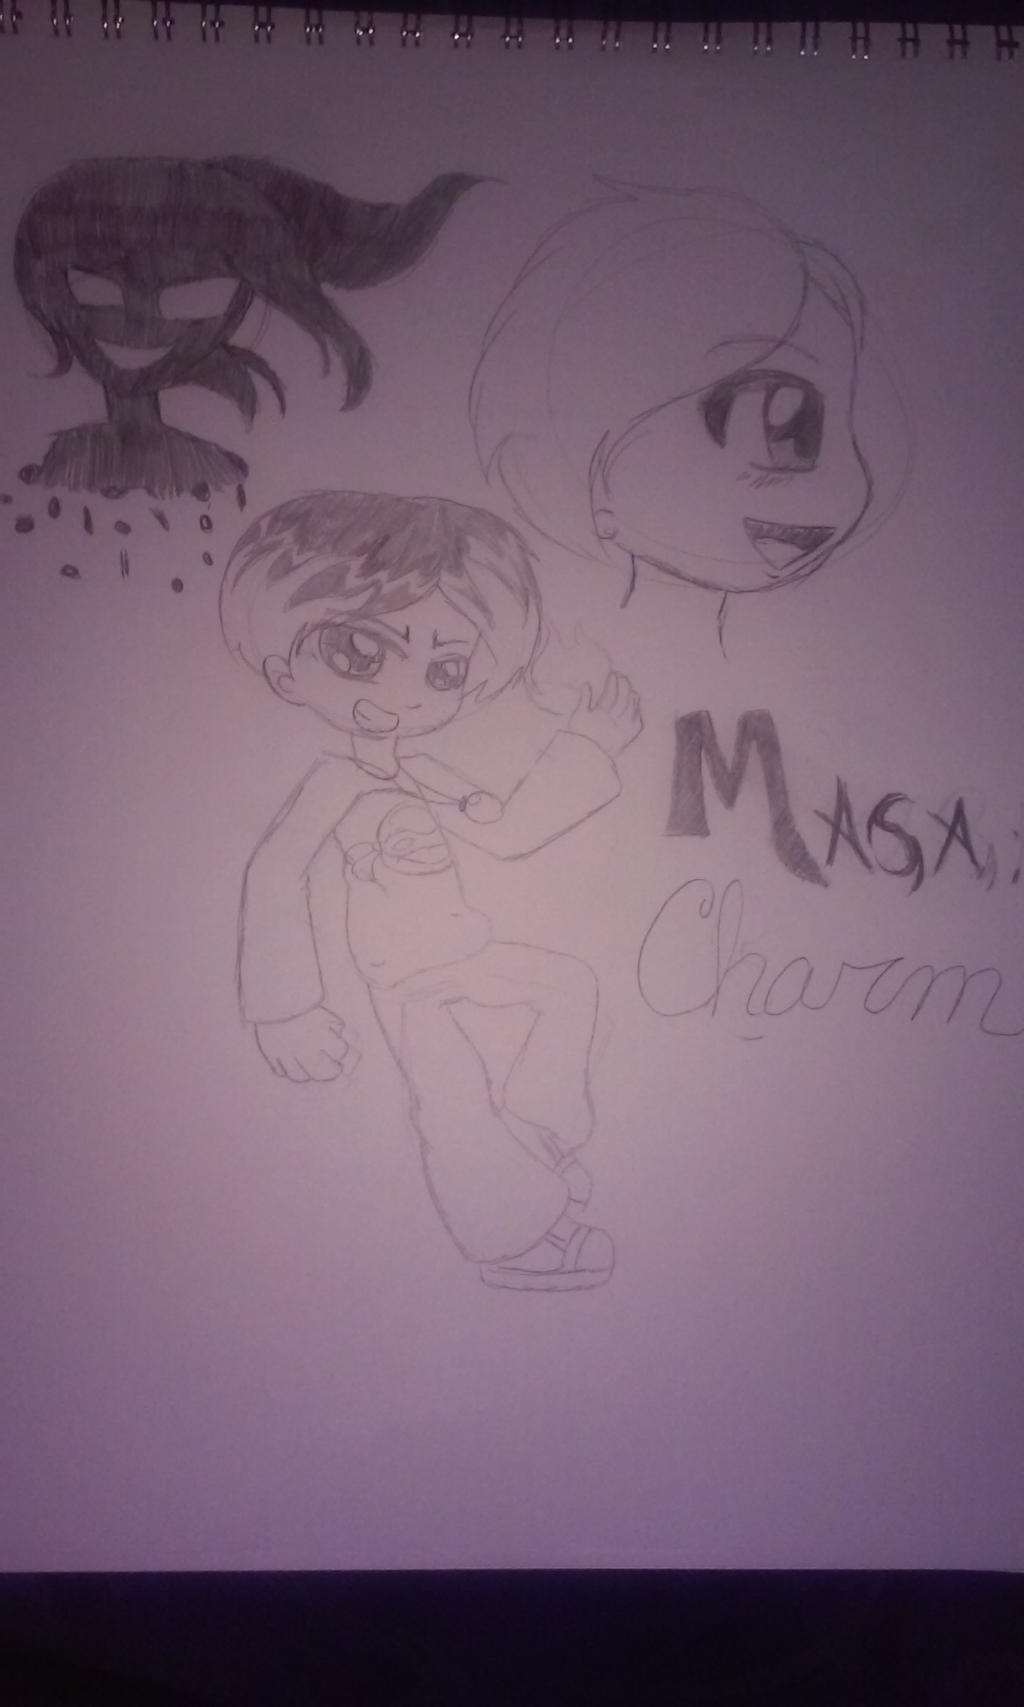 little masa years from now by cassandra the cat on little masa 5 years from now by cassandra the cat